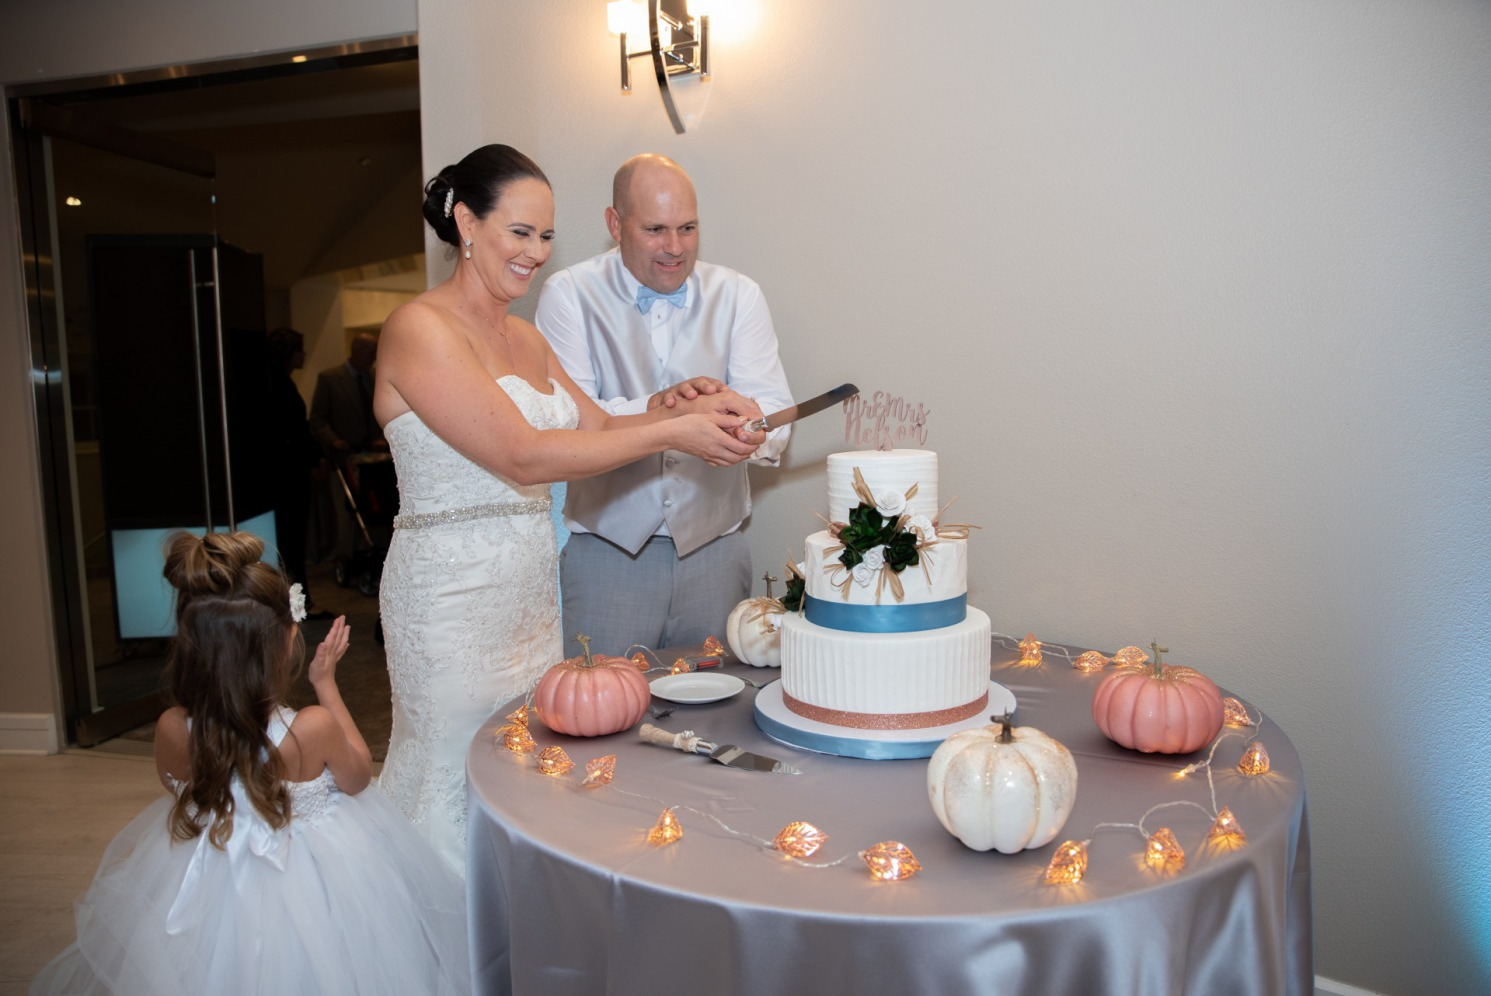 Blue Fall Wedding Inspiration. Happy Las Vegas couple cut the cake at their Reflection Bay Golf Club wedding.